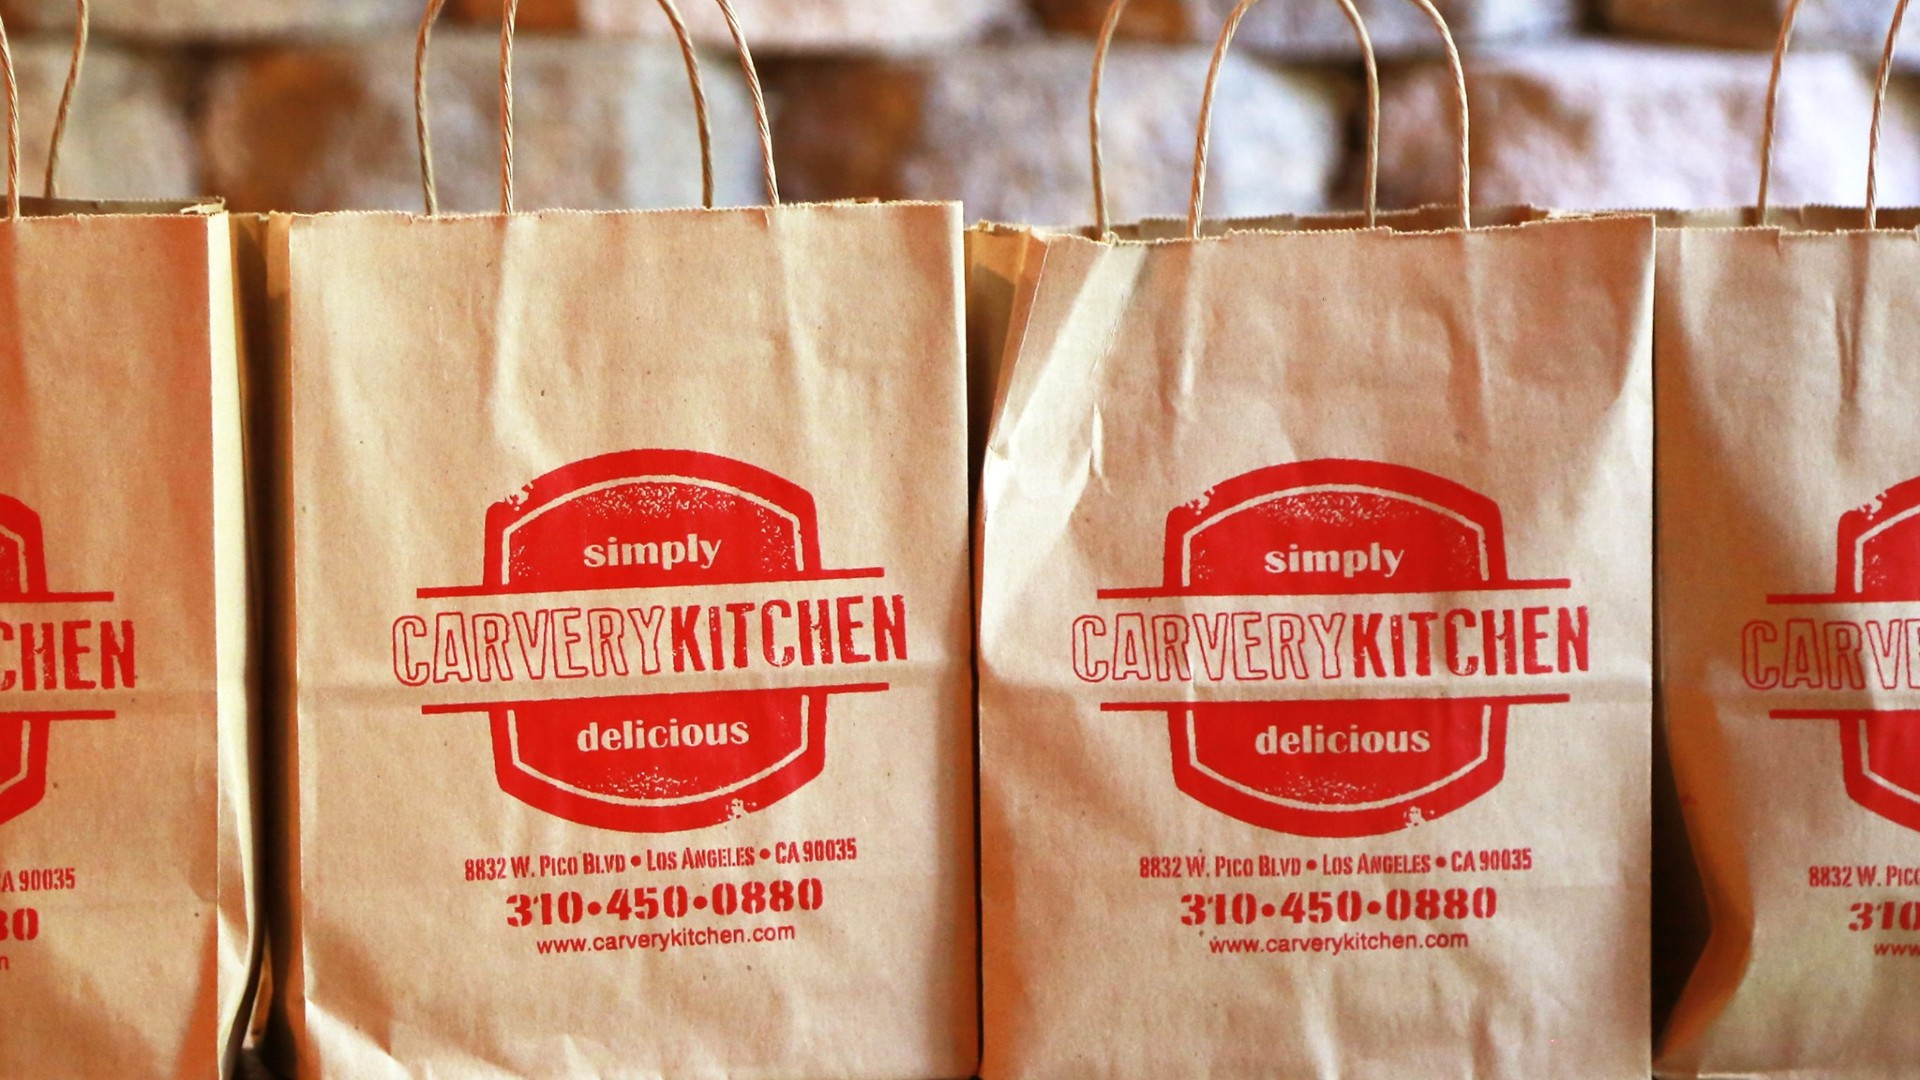 Carvery Kitchen take out bags are seen in an image posted to the restaurant's Facebook page.